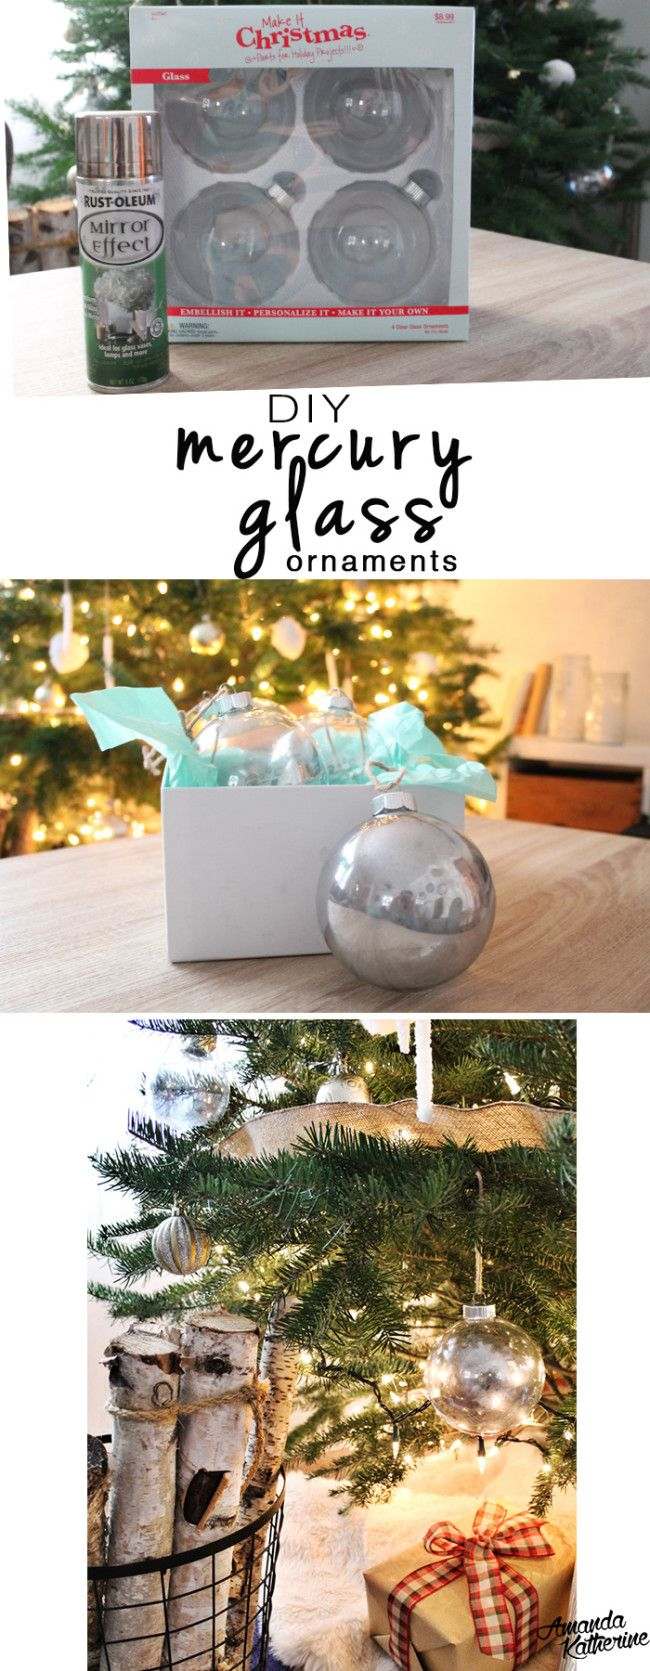 DIY Mercury Glass Ornaments | Still looking for some ornaments that won't break the bank? These simple mercury glass ornaments are easy to make and add just the sparkle you're looking for! http://www.amandakatherine.com/diy-mercury-glass-ornaments/